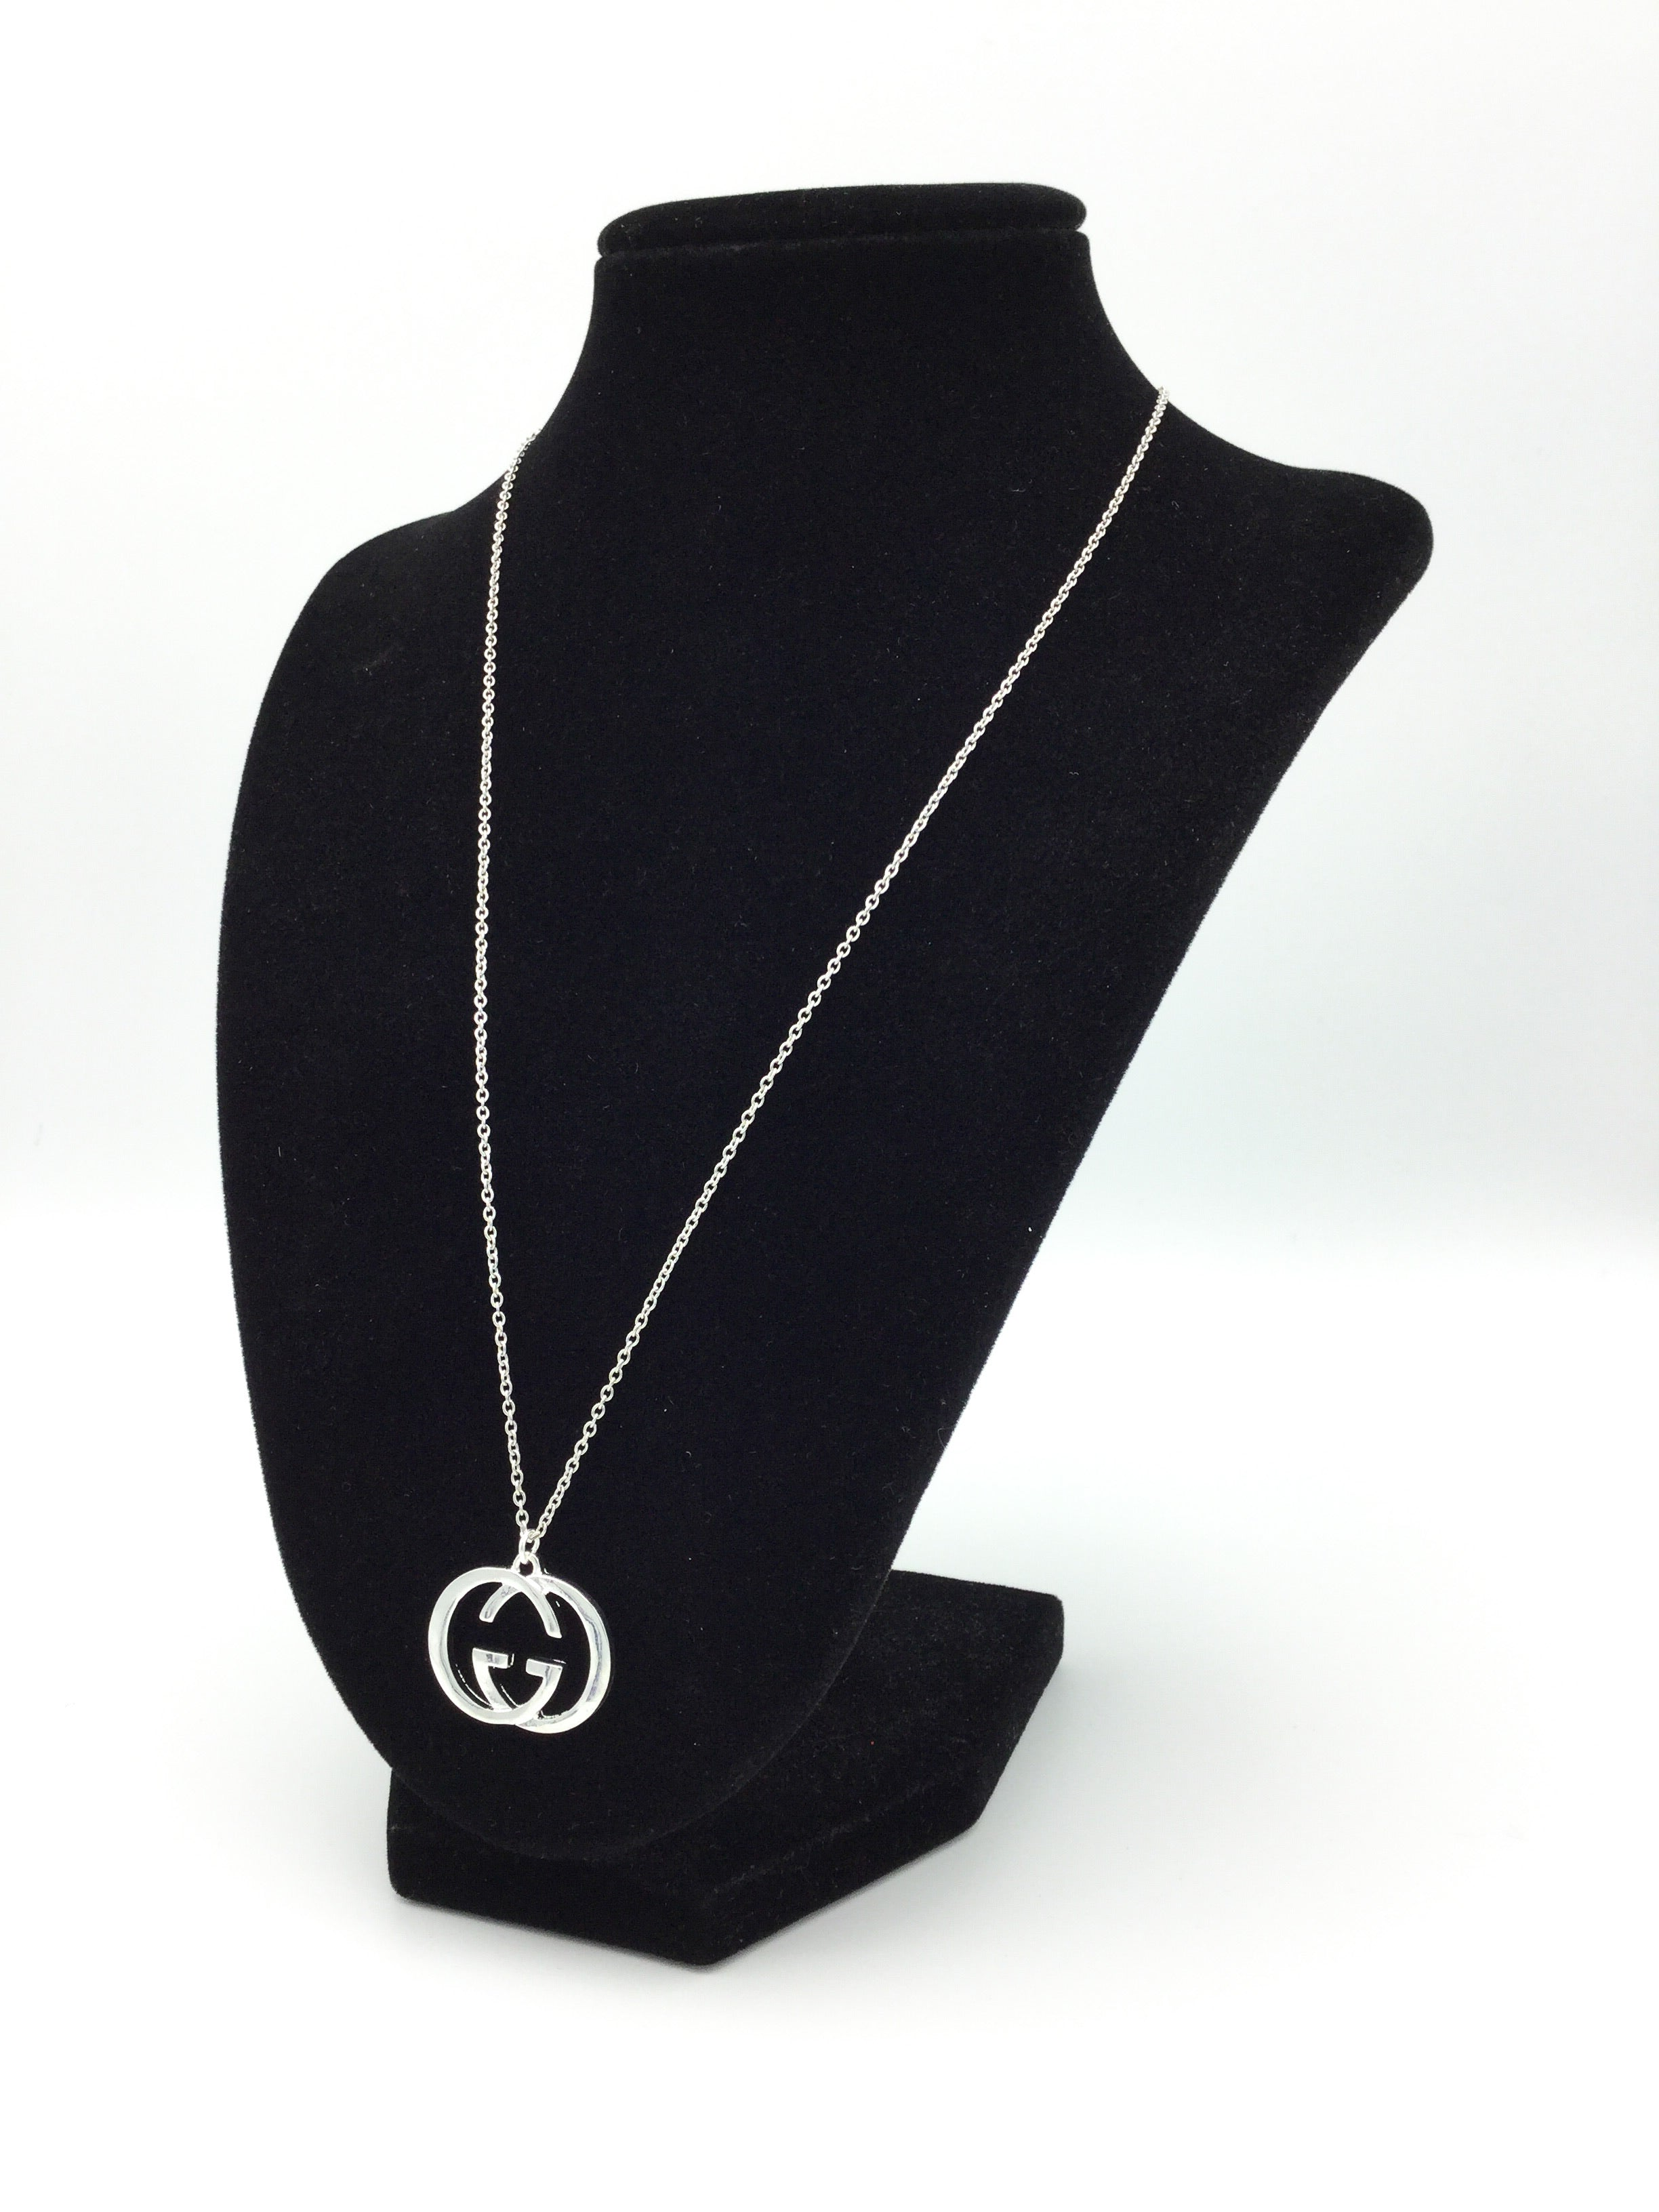 Silver Charm Necklace by Designer Therapy